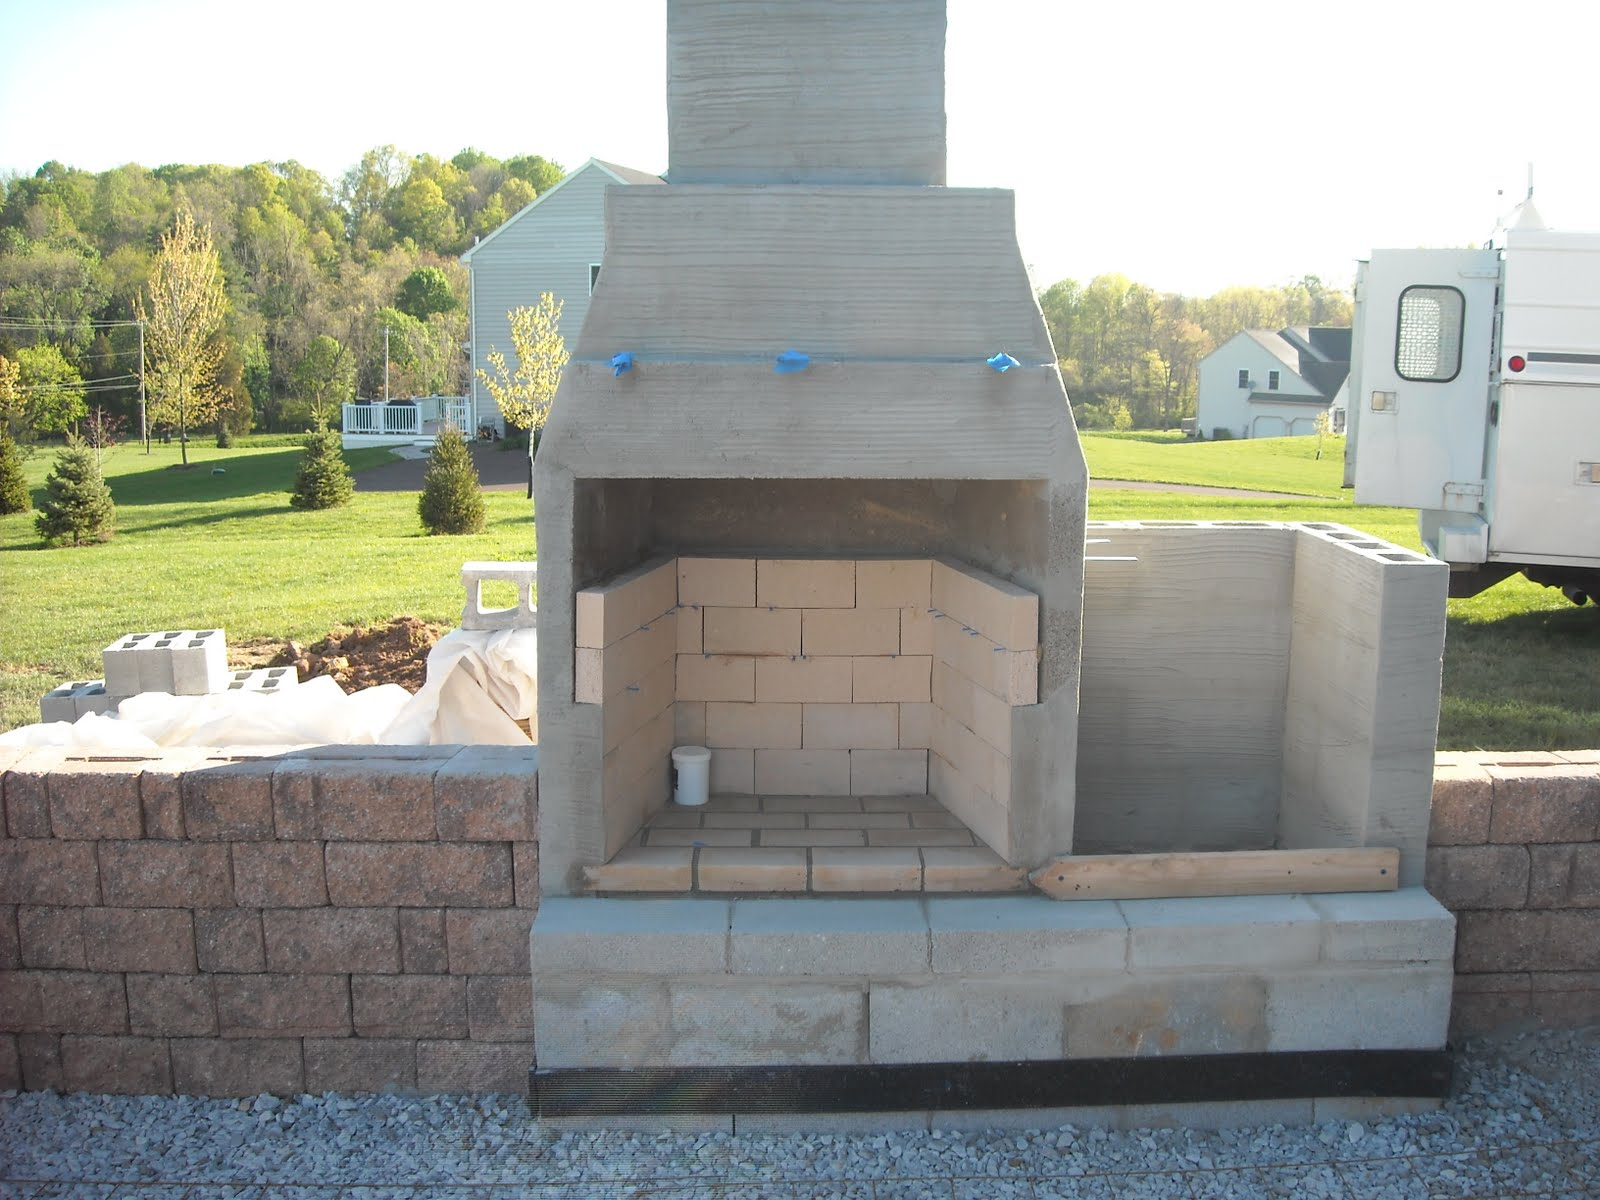 Outdoor Fireplace Contractors Concrete Block Outdoor Fireplace Design Pictures To Pin On